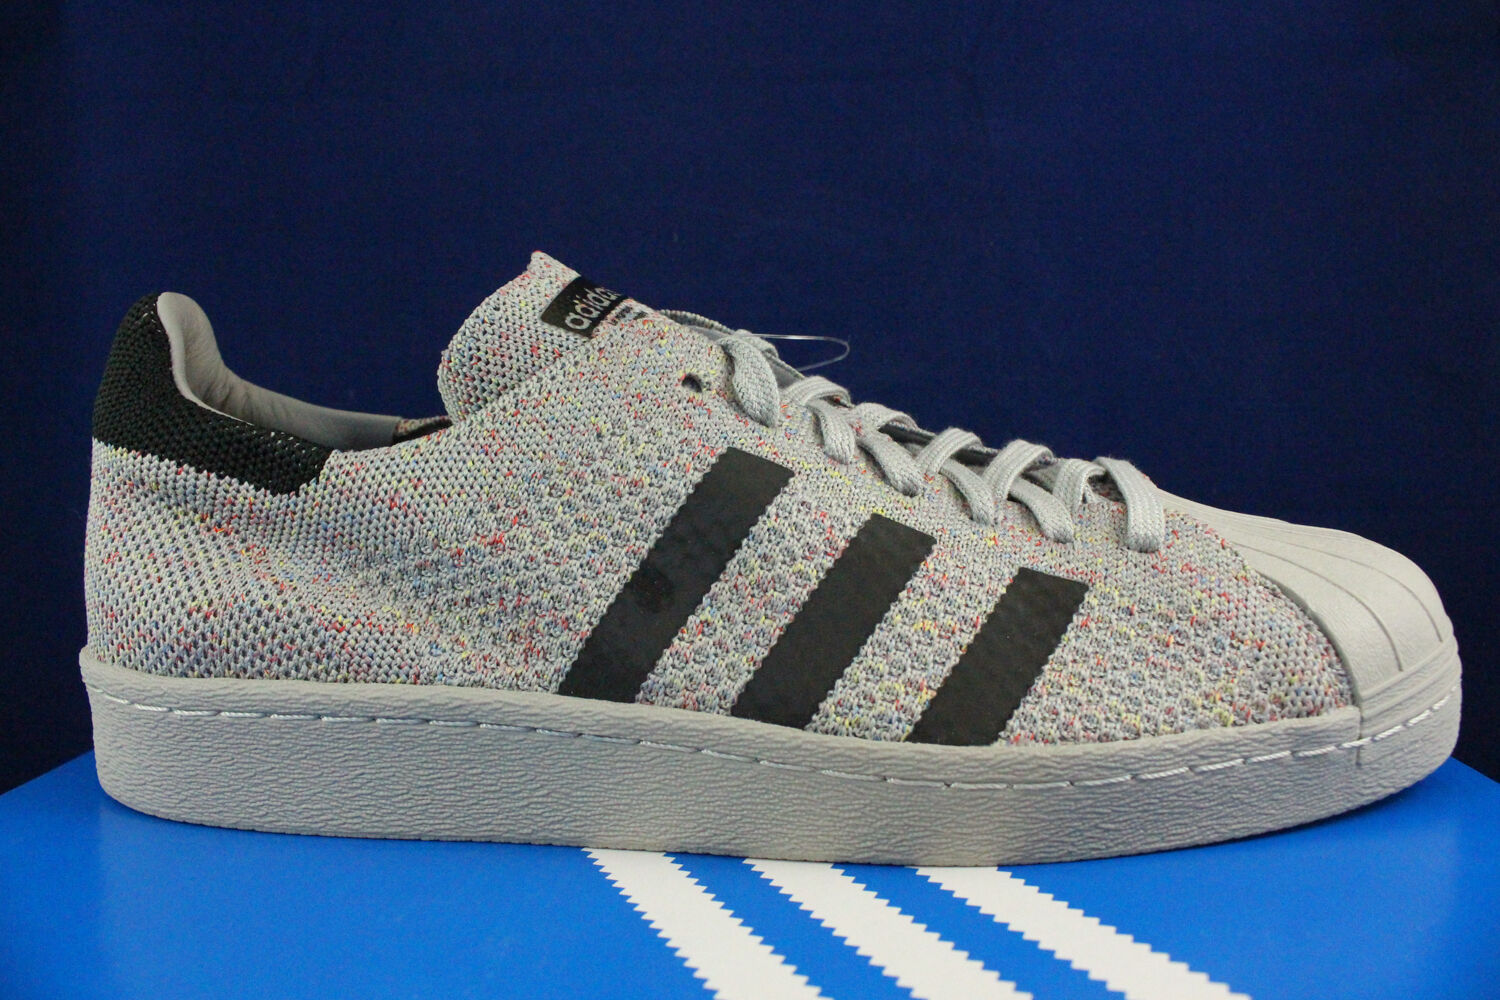 ADIDAS ORIGINALS SUPERSTAR 80'S PRIMEKNIT MULTI COLOR SOLID GREY S75843 SZ 12